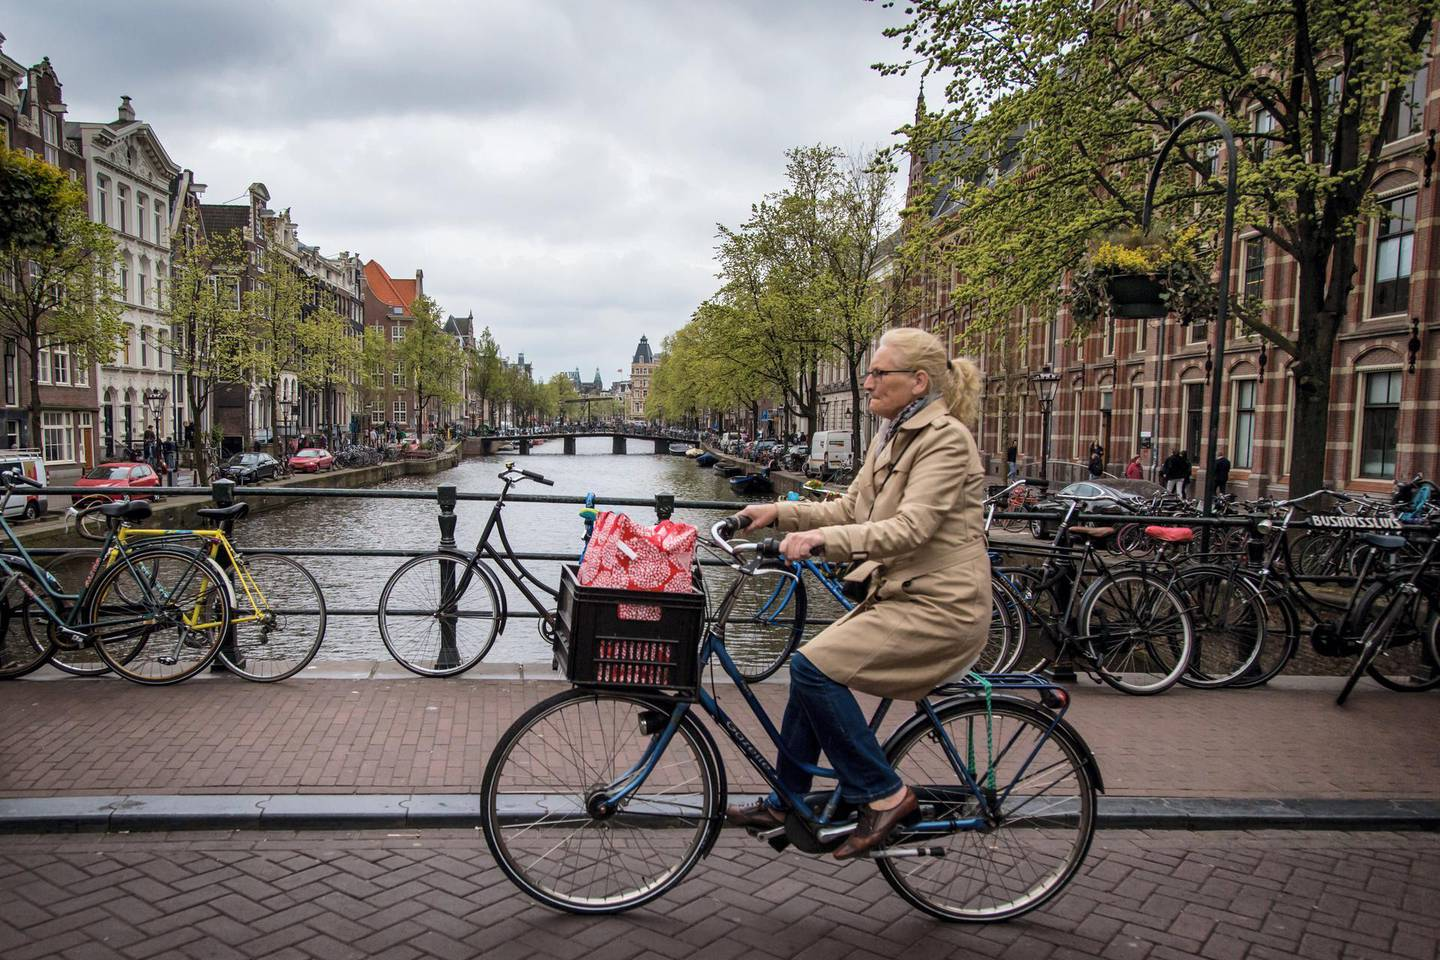 View of a canal in Amsterdam with a woman on a bicycle on April 12, 2017. (Photo by Aurore Belot / AFP)